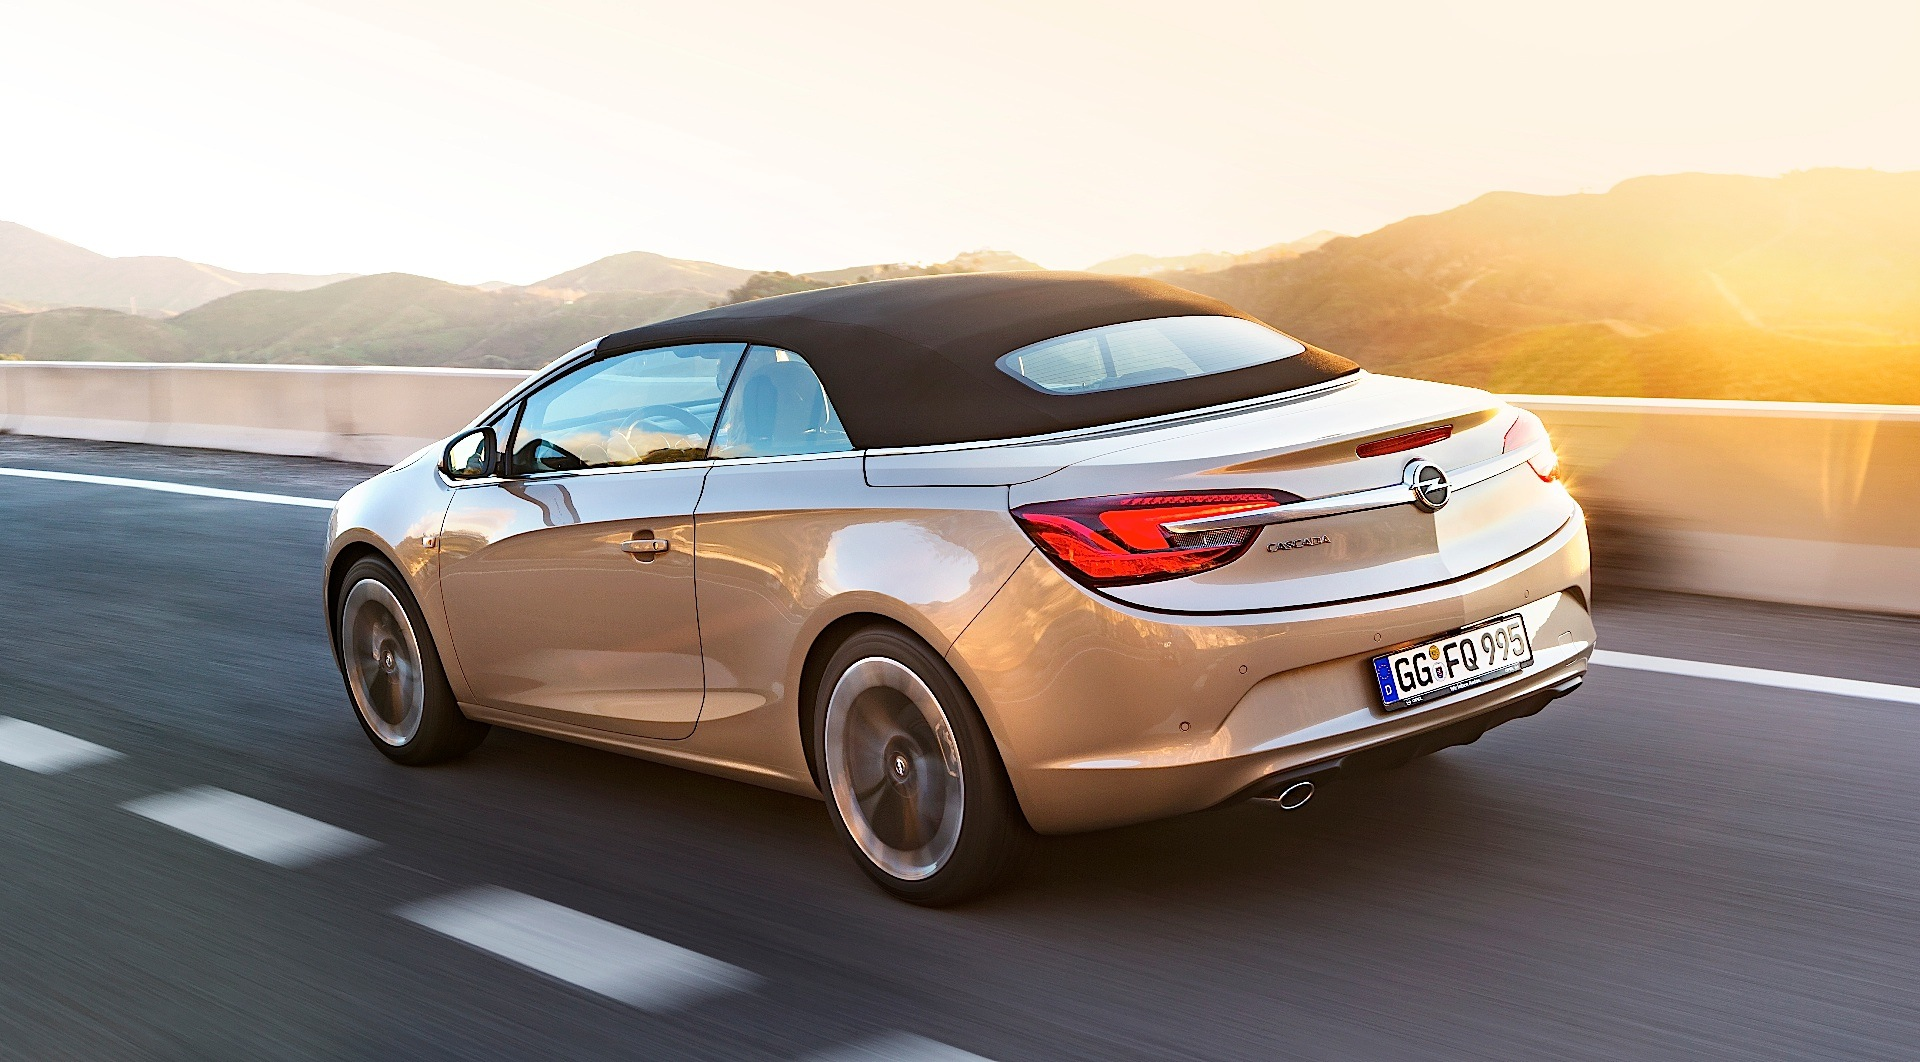 opel cascada specs 2013 2014 2015 2016 2017 2018 autoevolution. Black Bedroom Furniture Sets. Home Design Ideas